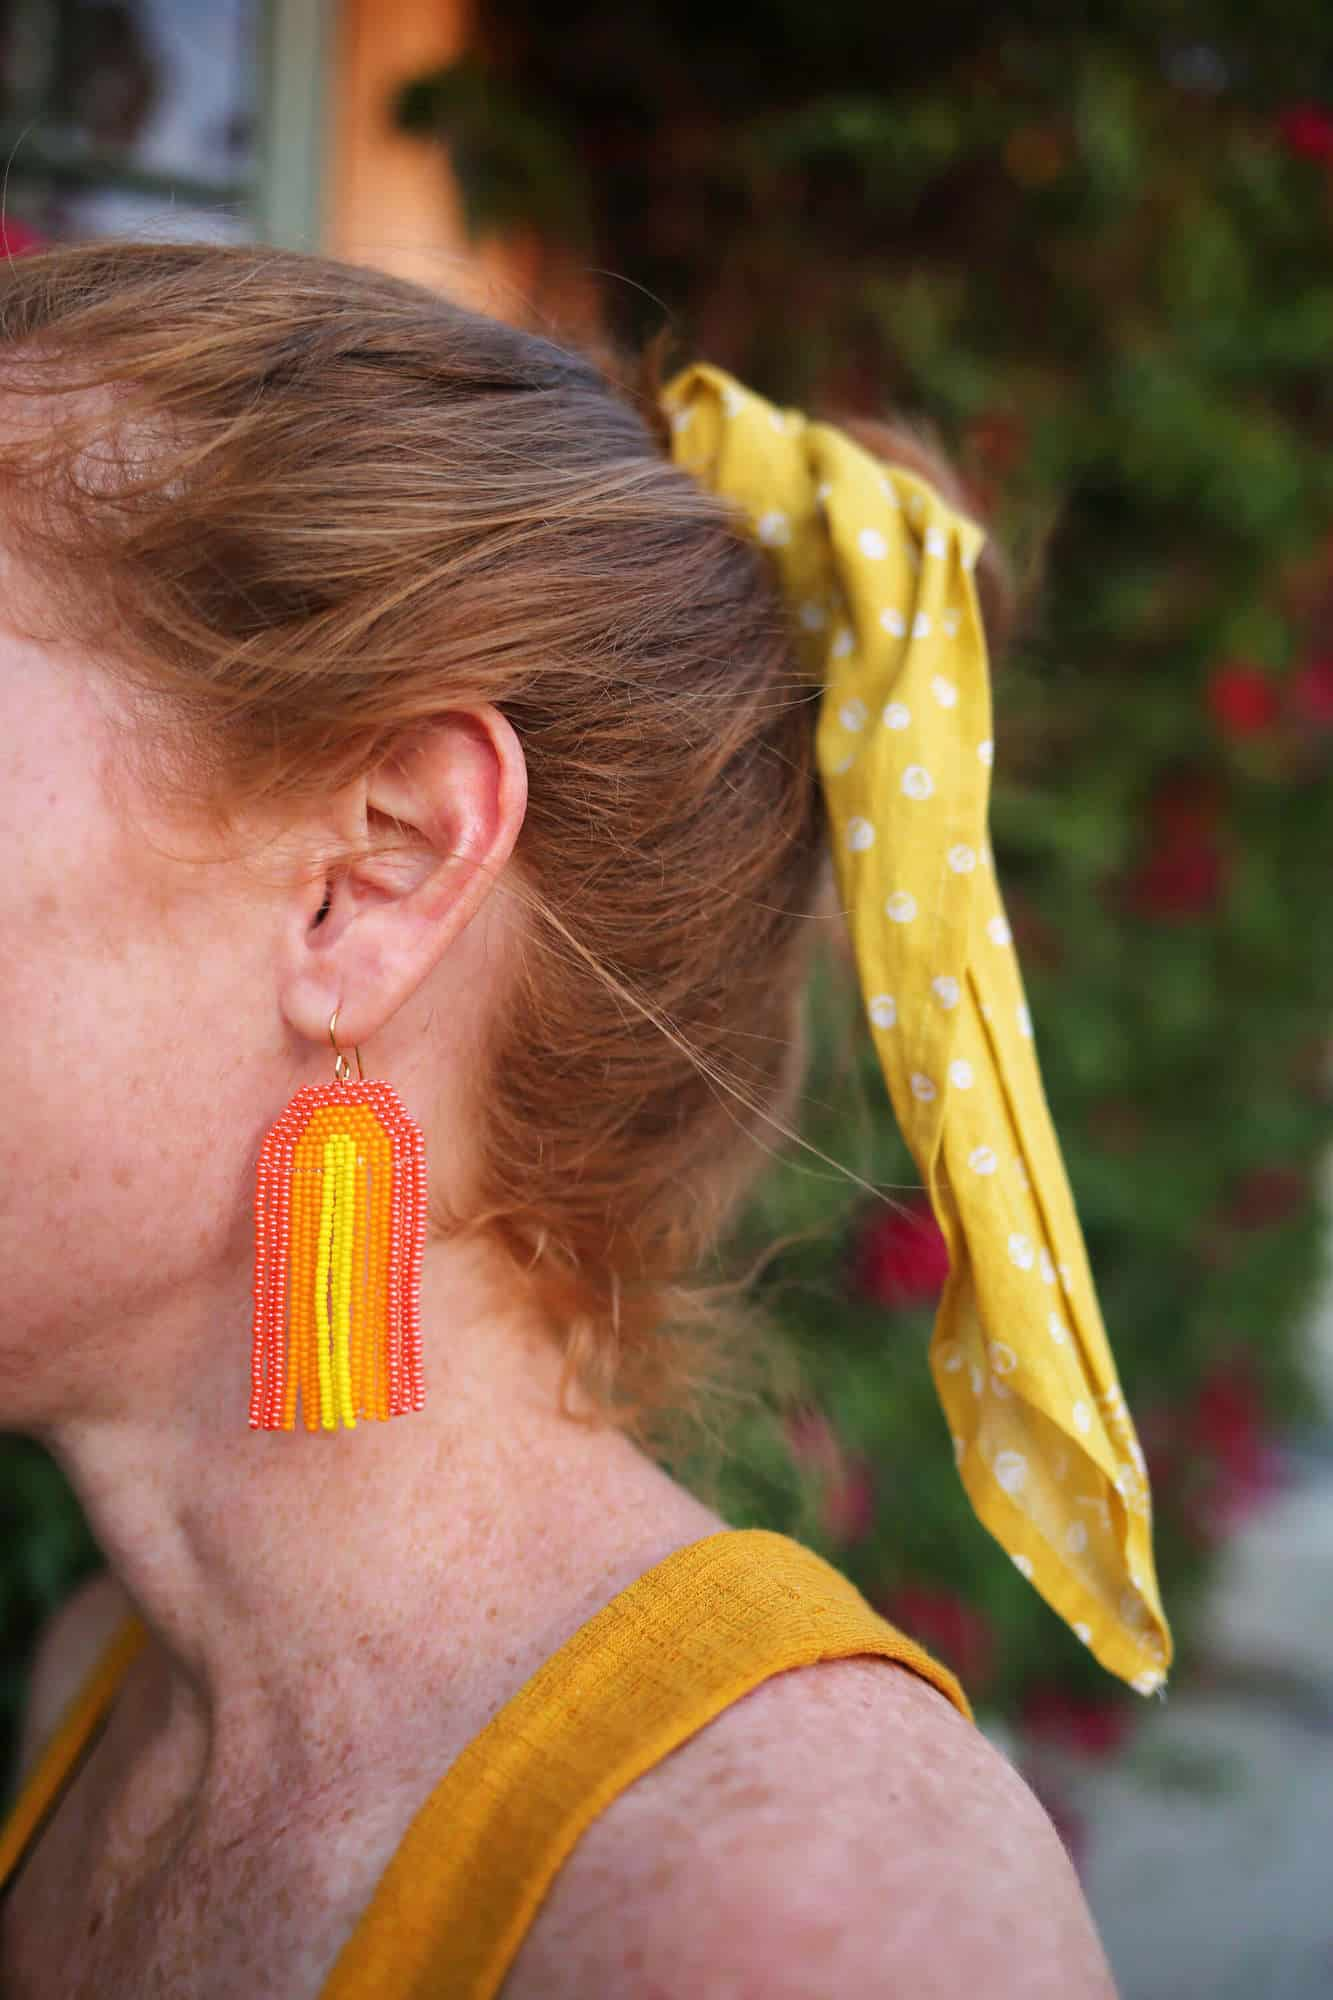 Find this rainbow seed bead earring tutorial on A Beautiful Mess blog